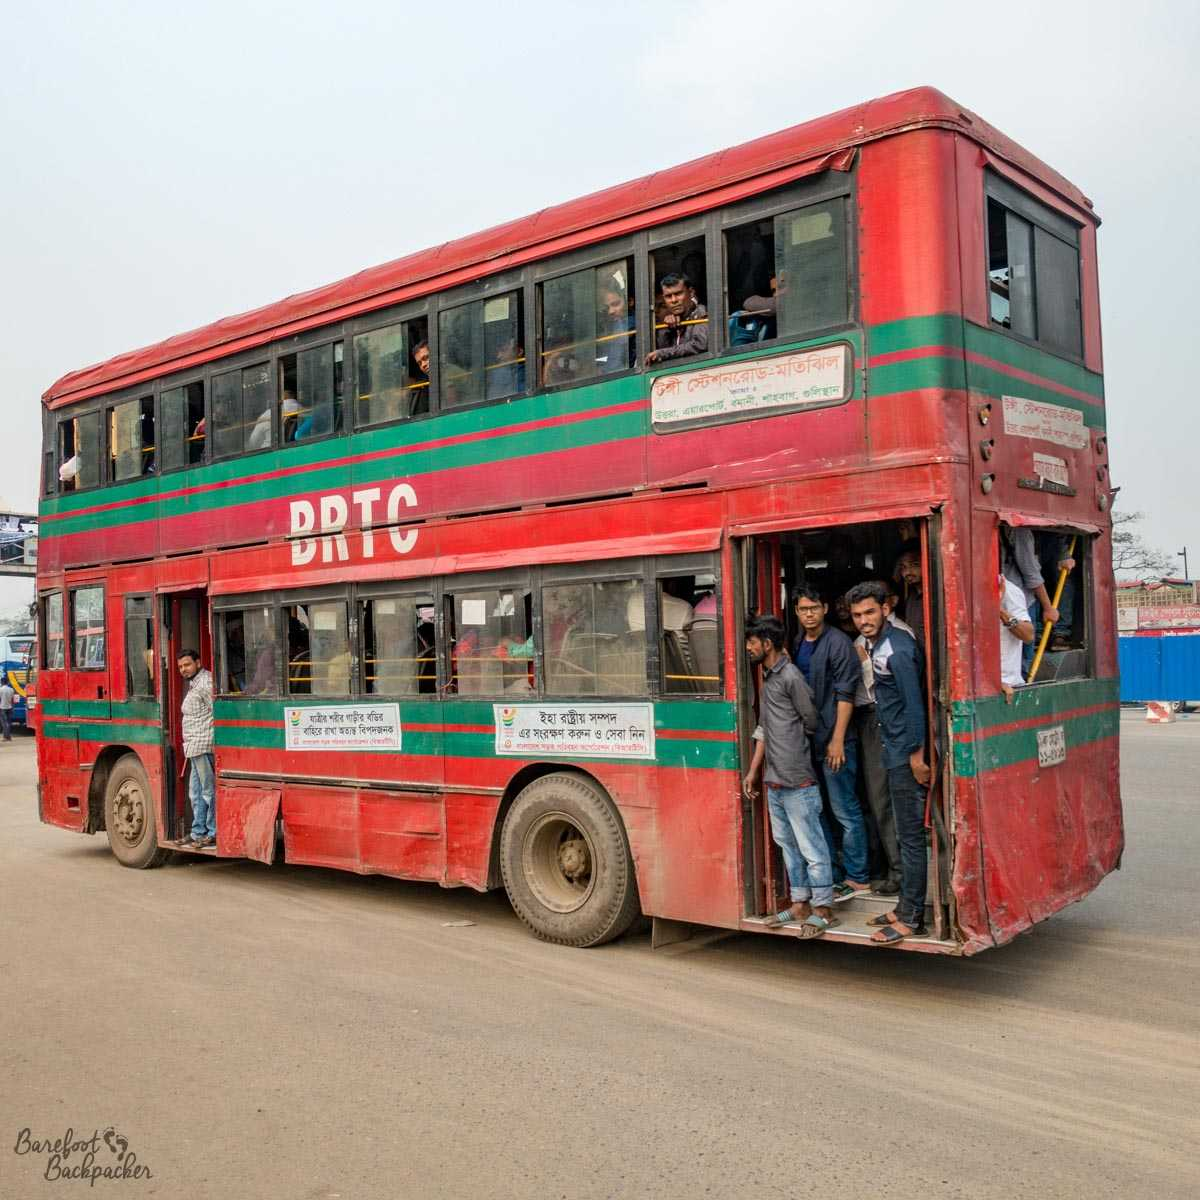 A typical bus in Dhaka – it's a red double-decker, it looks pretty old, and it's completely full to the extent that there are people just standing at the open door at the rear. They are not waiting to get off.